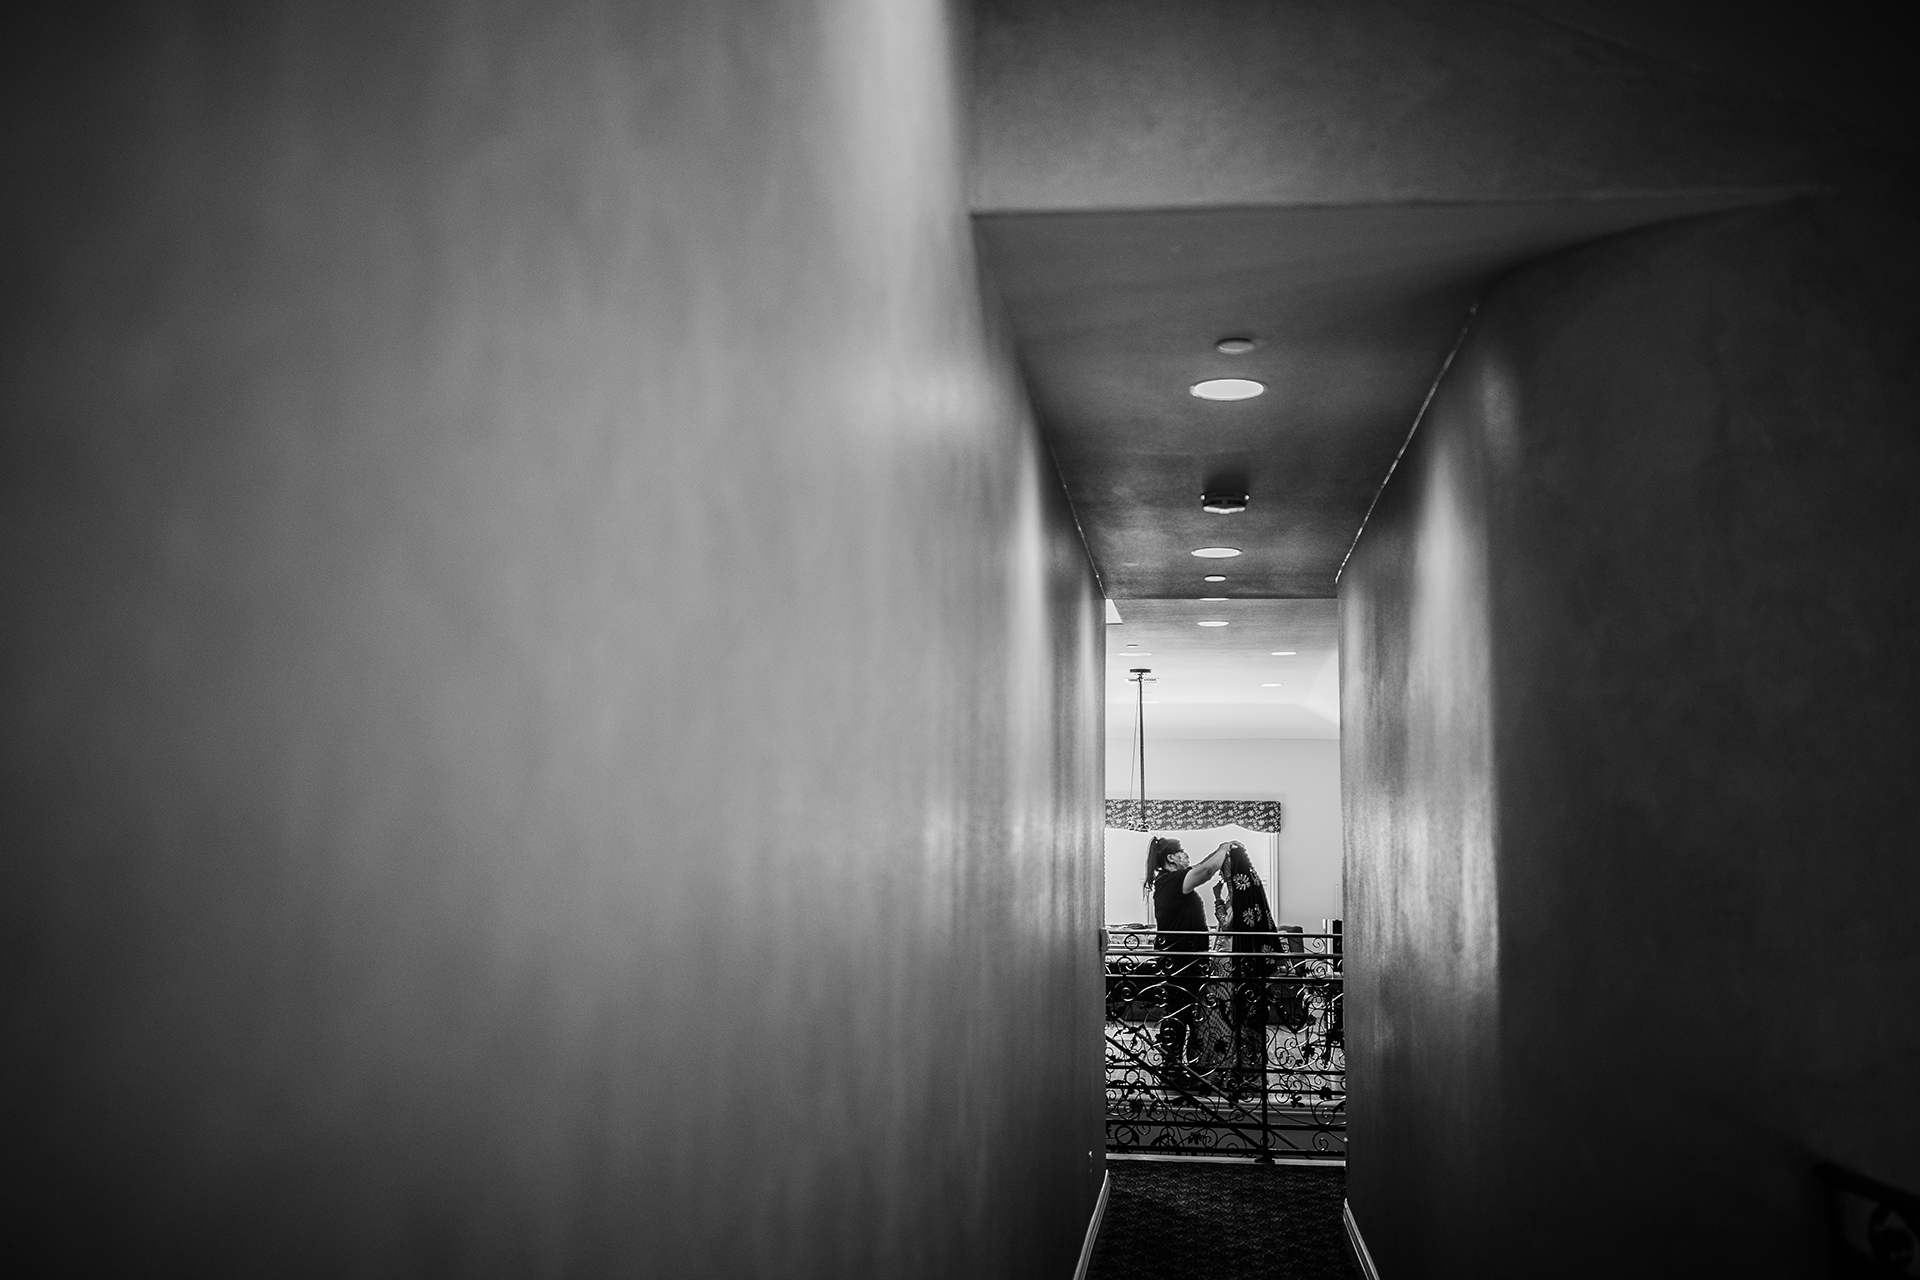 Elopement Photographers for Pleasanton, California | At the end of a long hallway, a woman helps the bride with some last-minute touch-ups